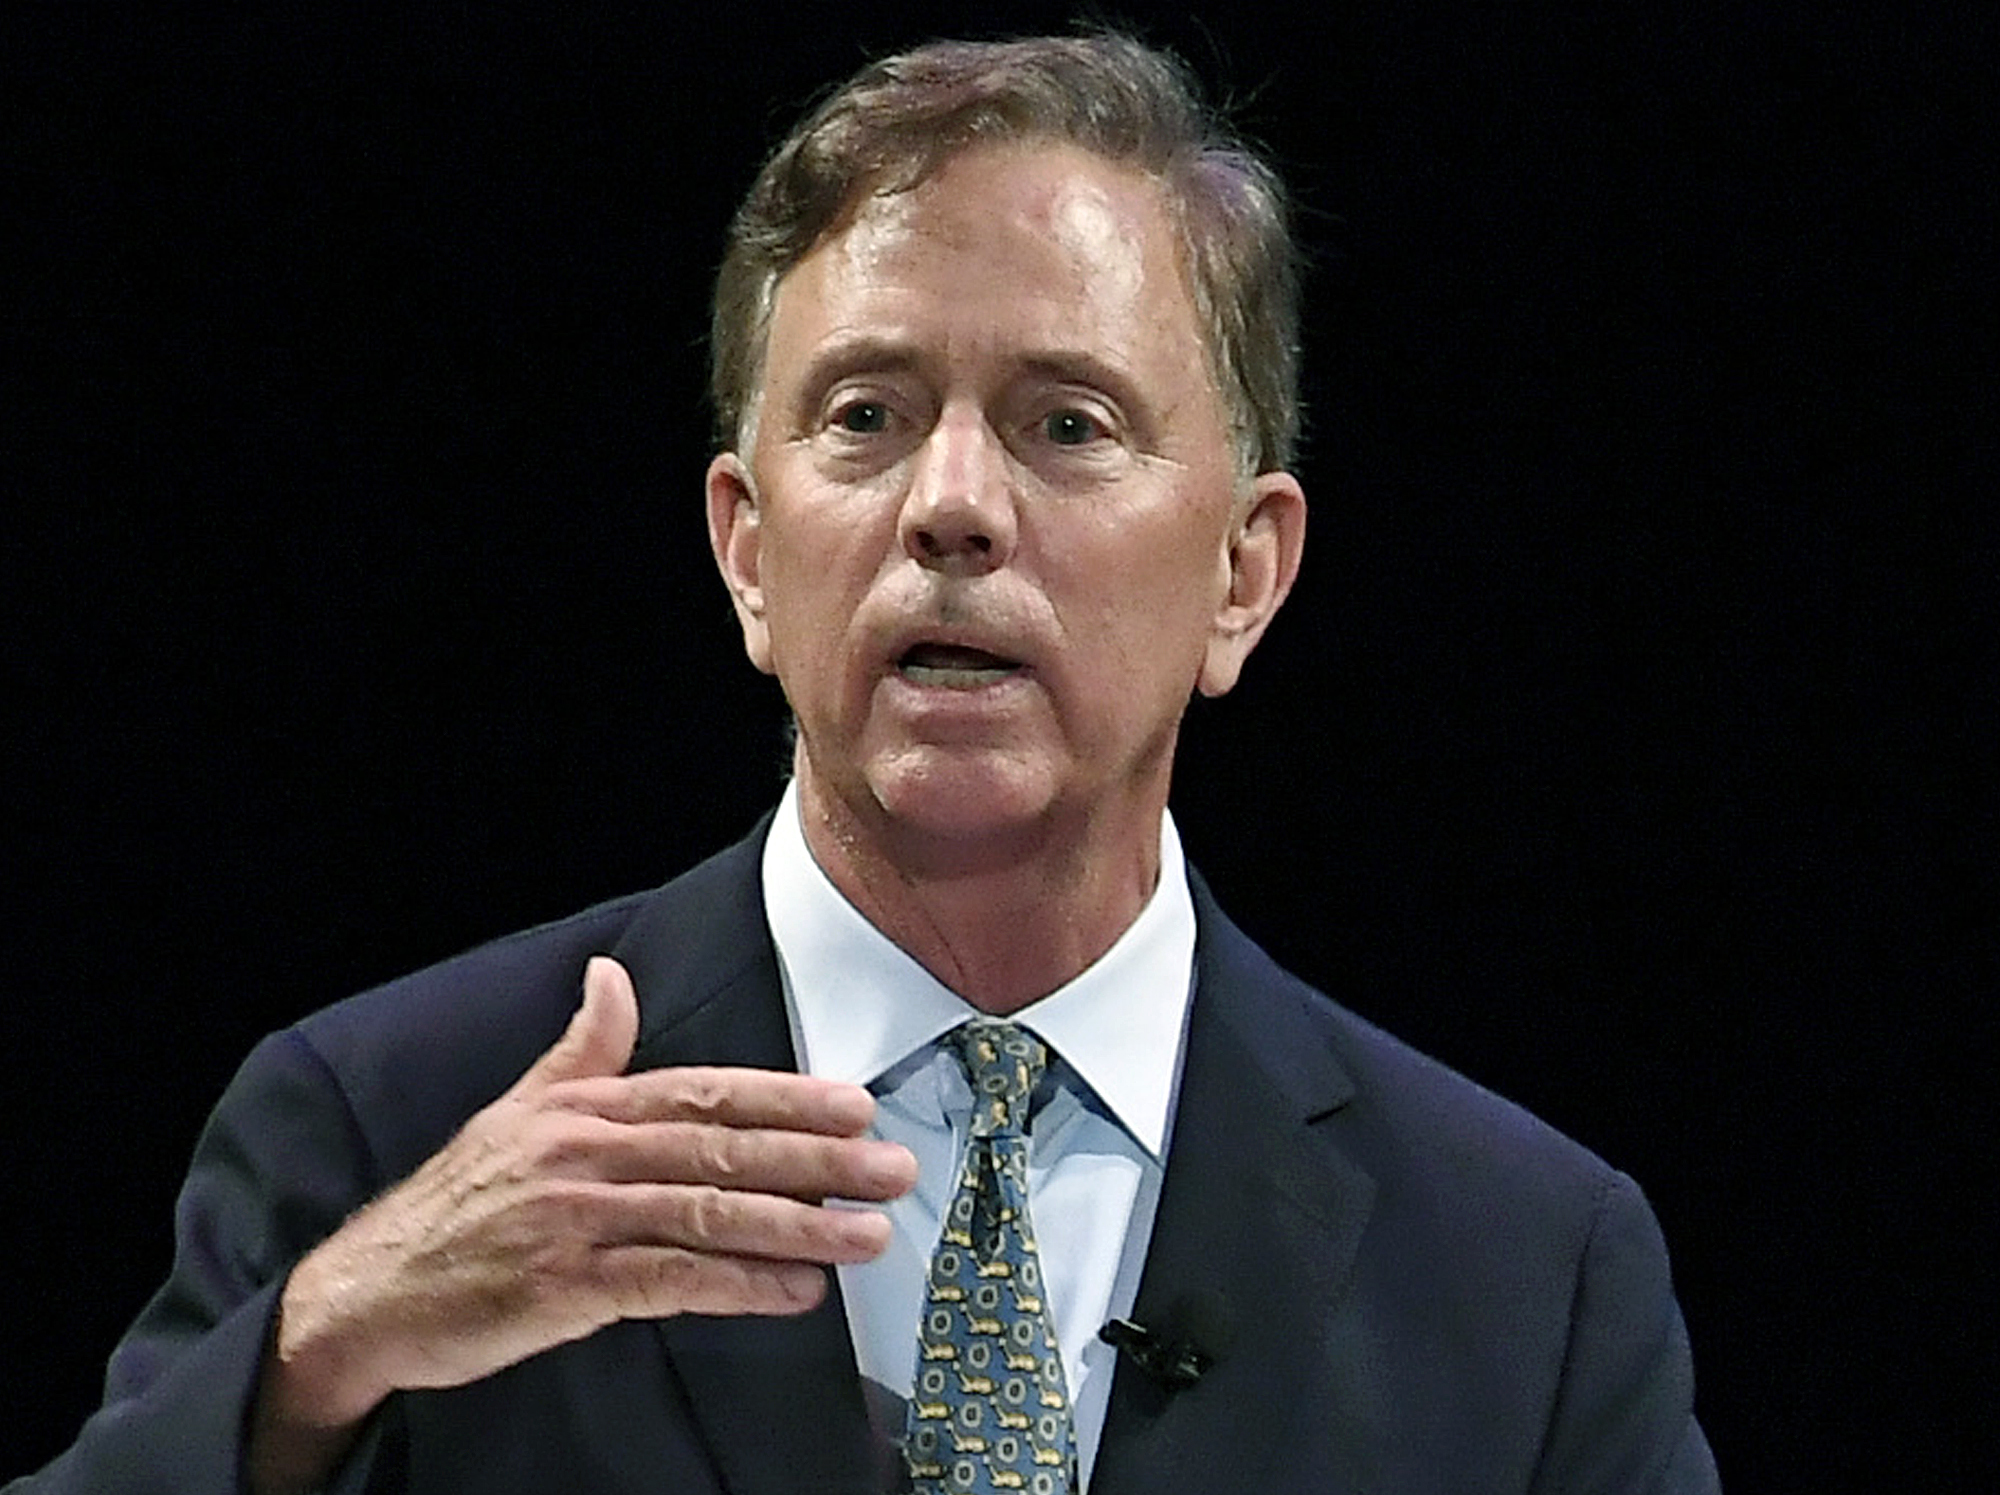 In this July 12, 2018 file photo, Democratic candidate for governor Ned Lamont speaks during a gubernatorial debate in New Haven, Connecticut.